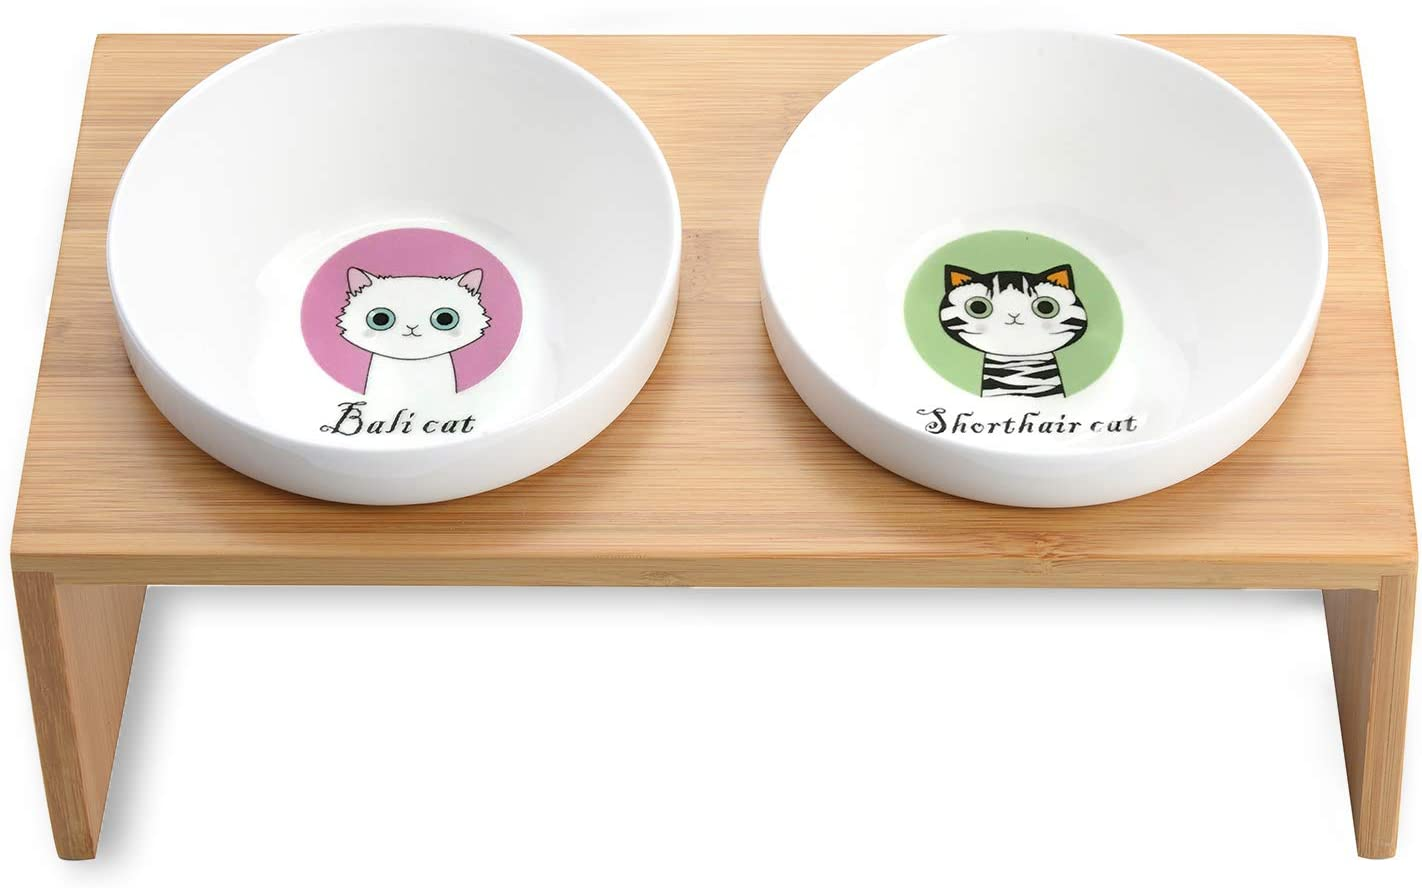 Lollimeow Pet Elevated Dog and Cat Wooden Rack Pet Feeder, Raised Stand Comes with Two Ceramic Bowls